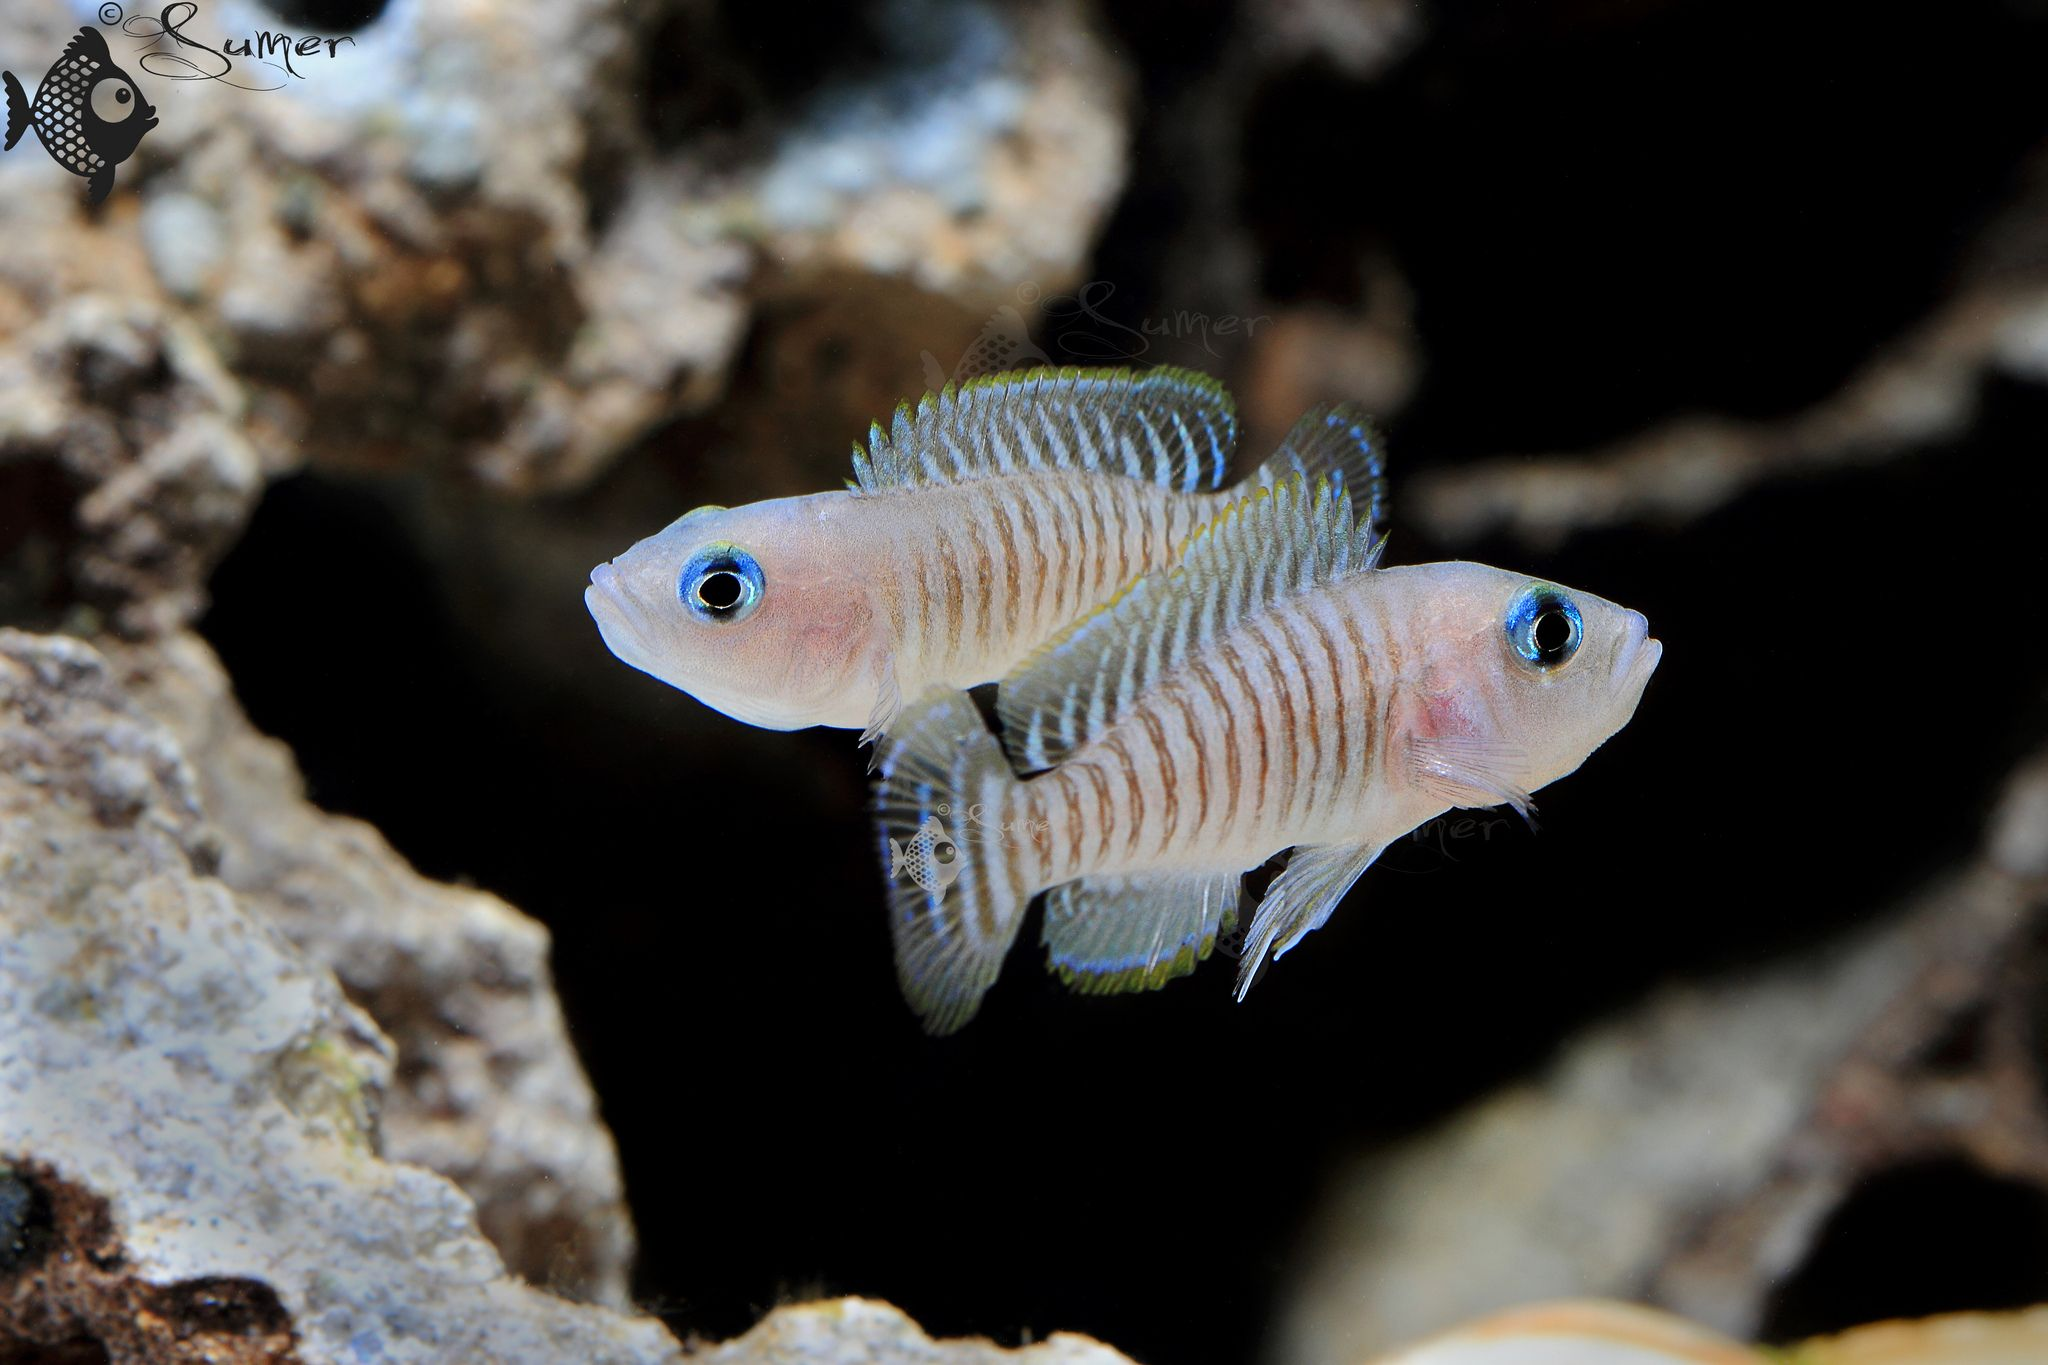 Freshwater aquarium fish bottom dwellers - Neolamprologus Multifasciatus Have A Tank Full Of These Cute Guys Tanganyikan Shell Dwellers Are